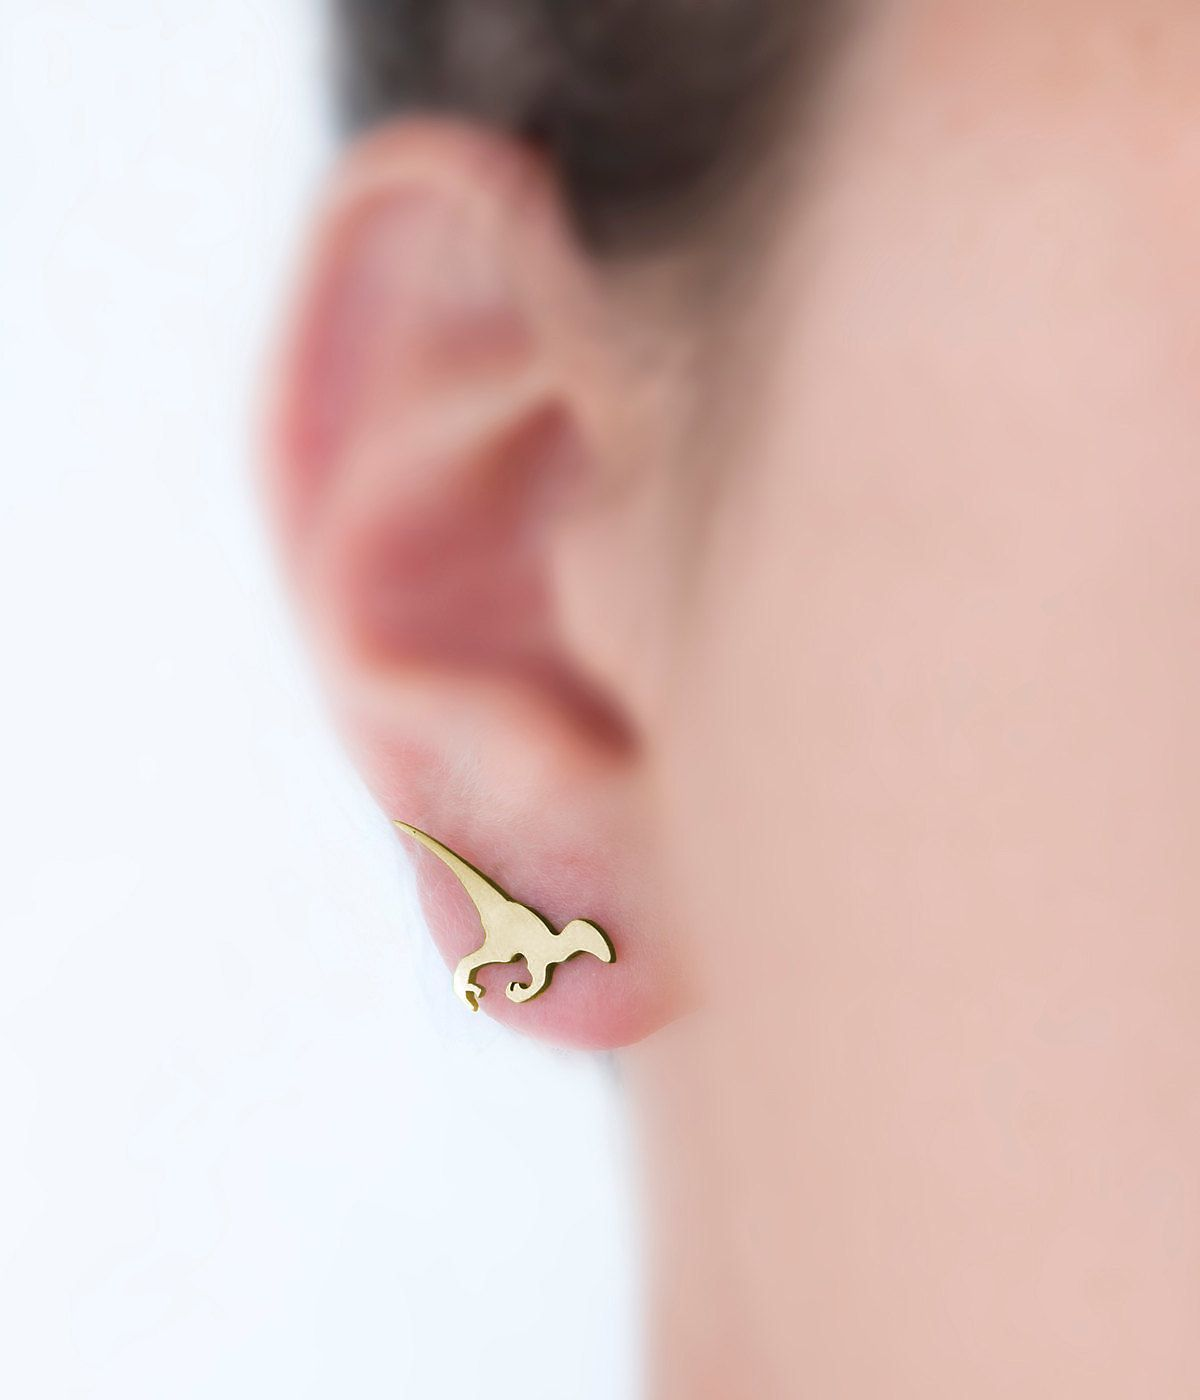 Raptor earrings, YELLOW GOLD MATTE, dinosaur studs, dinosaur jewelry ...